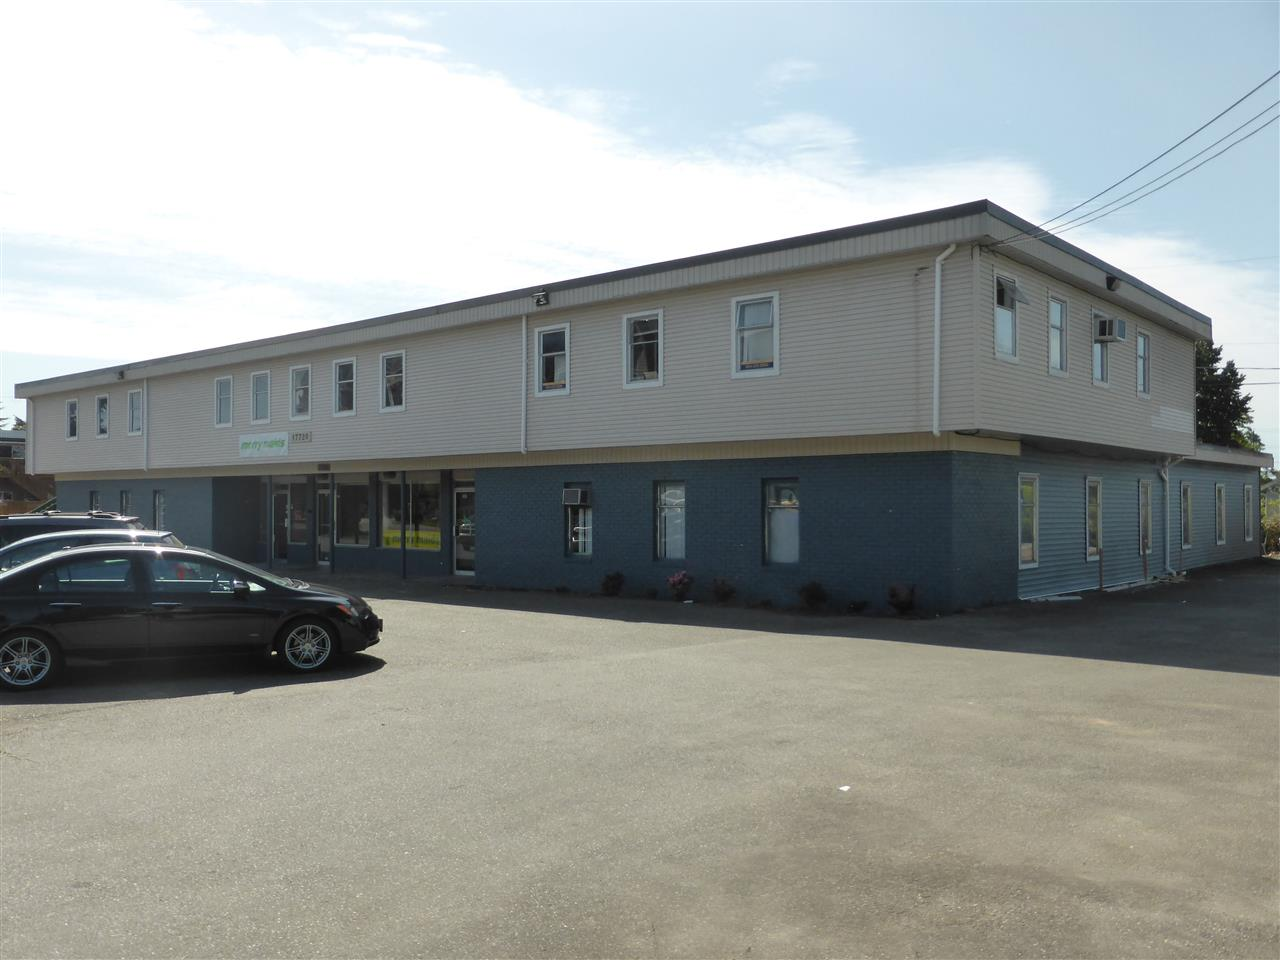 Office units in central Cloverdale. The space available is 1825 SqFt approx. This is in a series of offices of varying sizes and includes a kitchen. Please review the floor area image for spaces available. Landlord will consider a lease for a section of the space as well. All space is on the second floor and is accessed by stairwell. Call for more details.